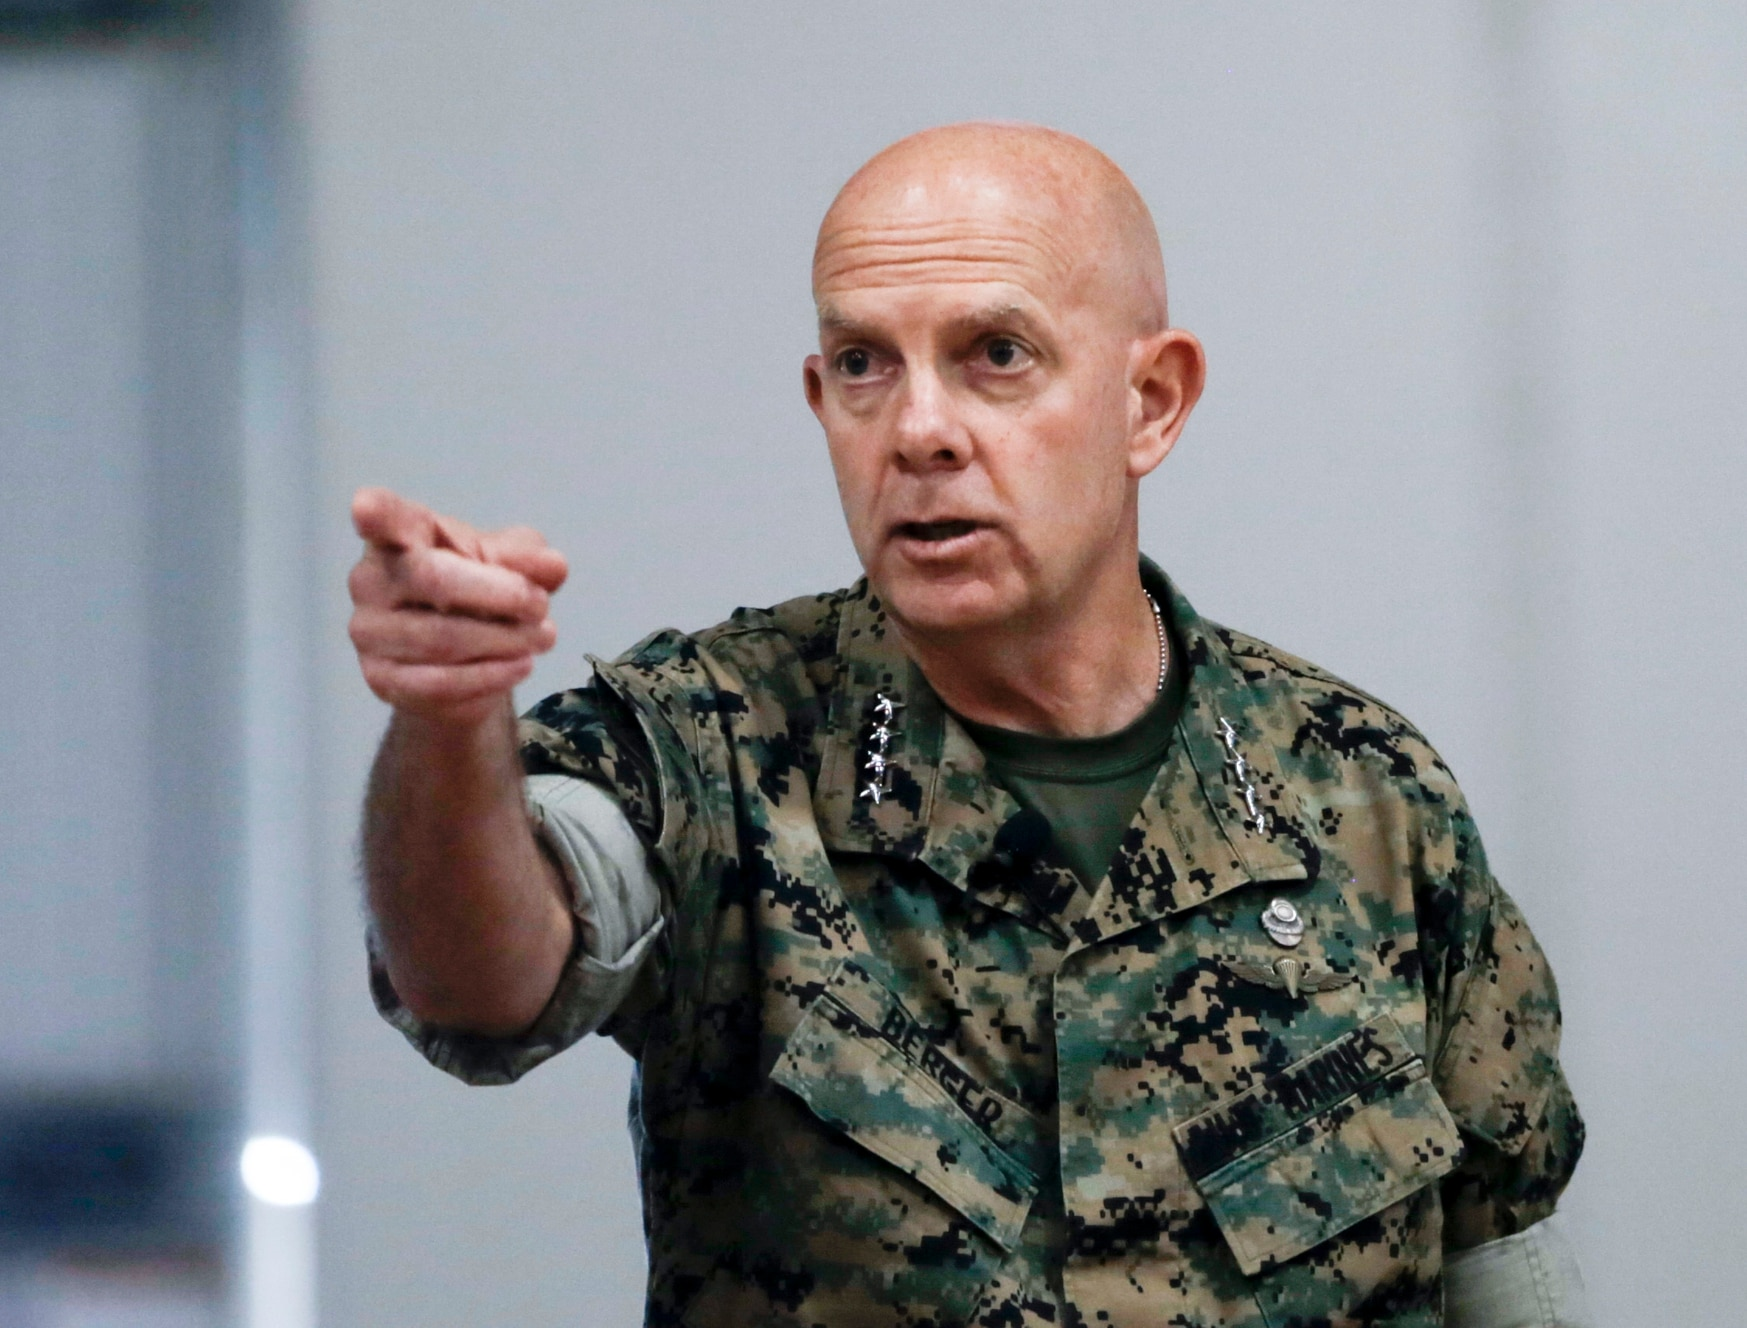 Commandant of the Marine Corps Gen. David Berger rejected criticism that his plan was too narrowly focused. (Warrant Officer Bobby J. Yarbrough/U.S. Marine Corps)